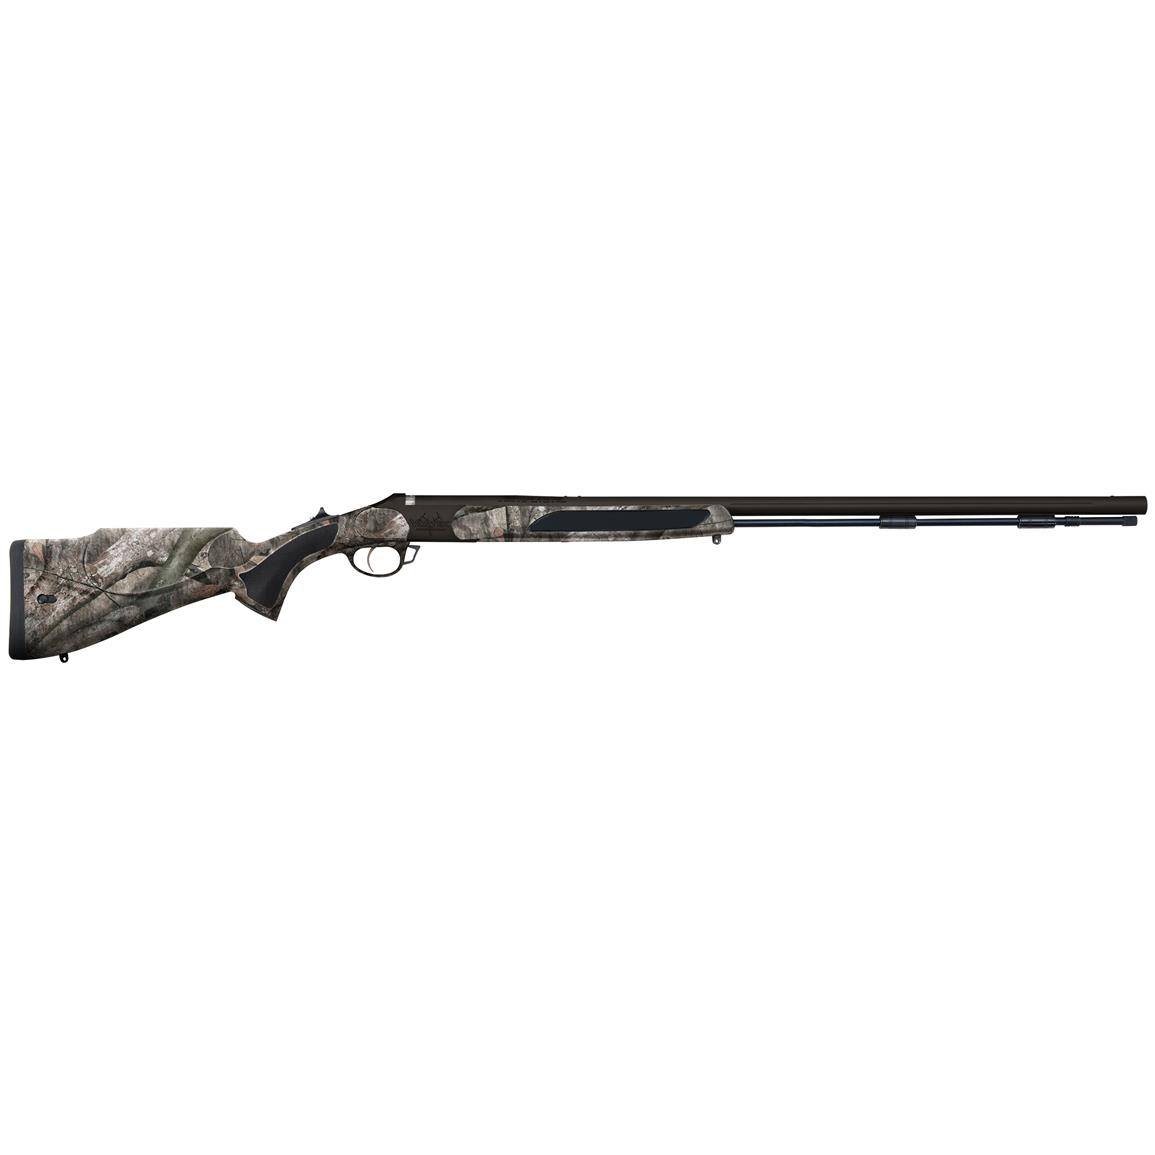 Traditions Vortek StrikerFire with Nitride Coating .50 caliber Muzzleloader, Mossy Oak Treestand